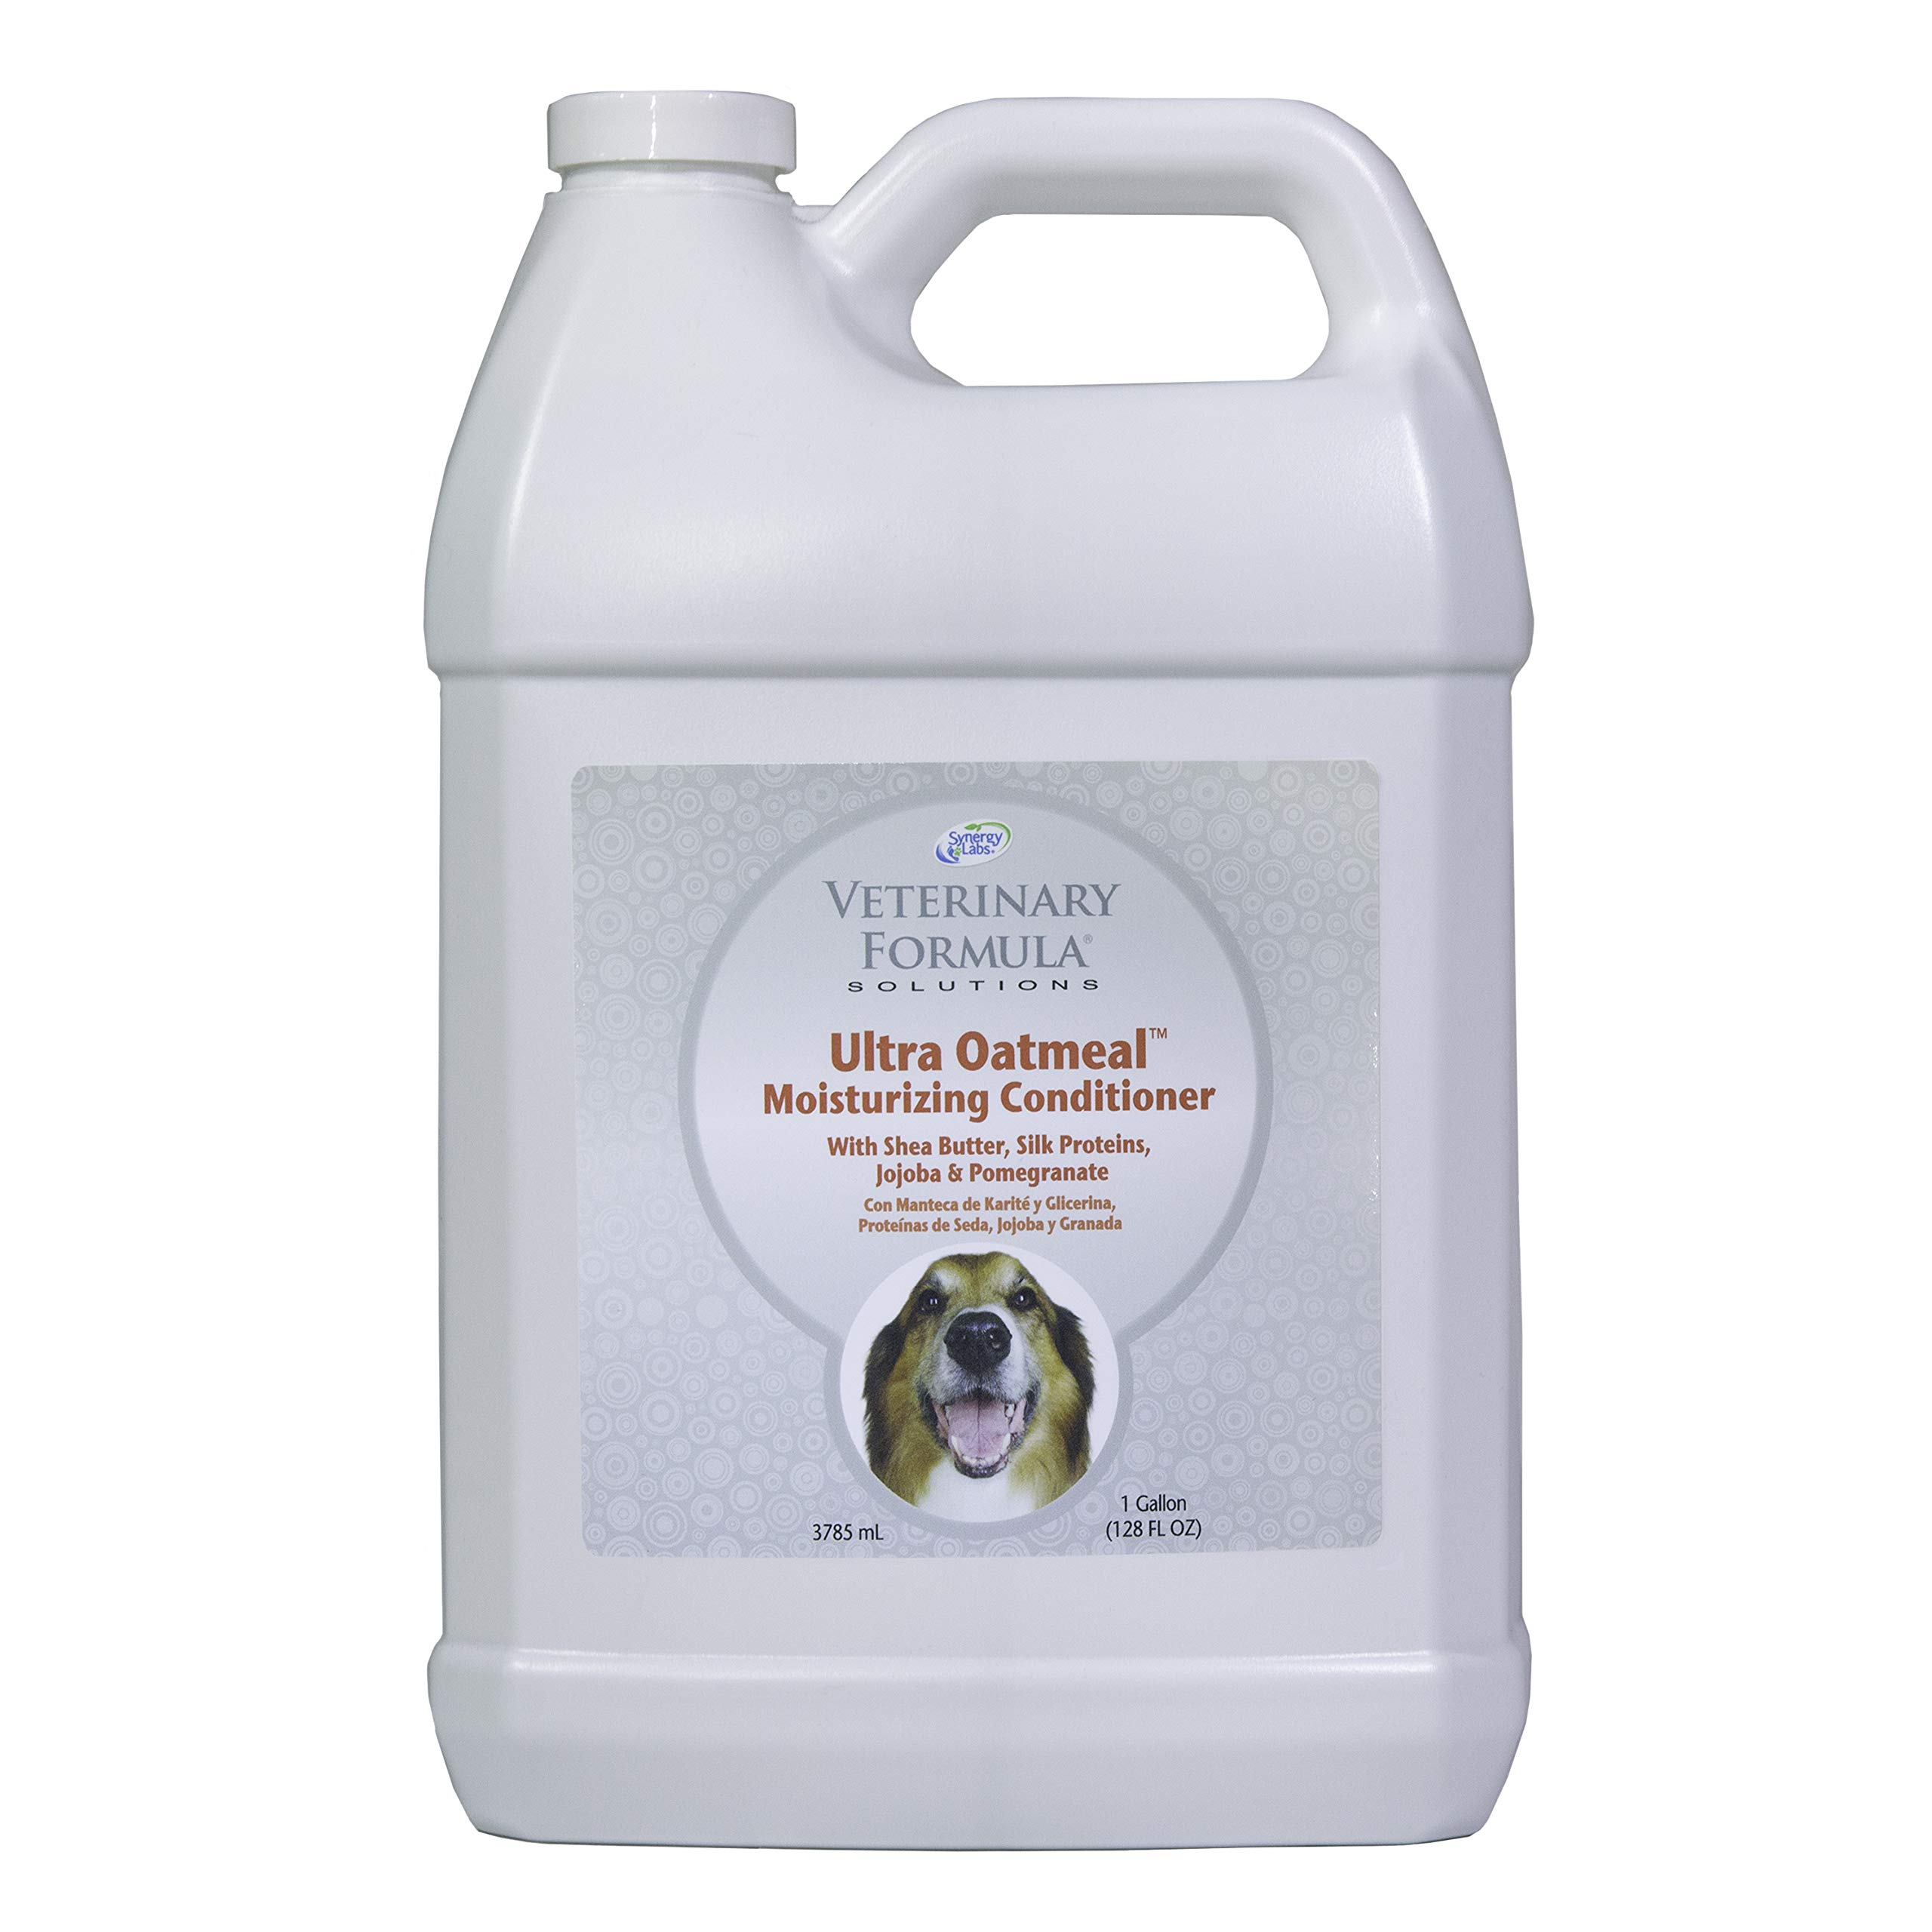 Veterinary Formula Solutions Ultra Oatmeal Moisturizing Conditioner, Soothes Skin Related Issues, Clinically Proven Dog Itch Relief (1 Gallon)